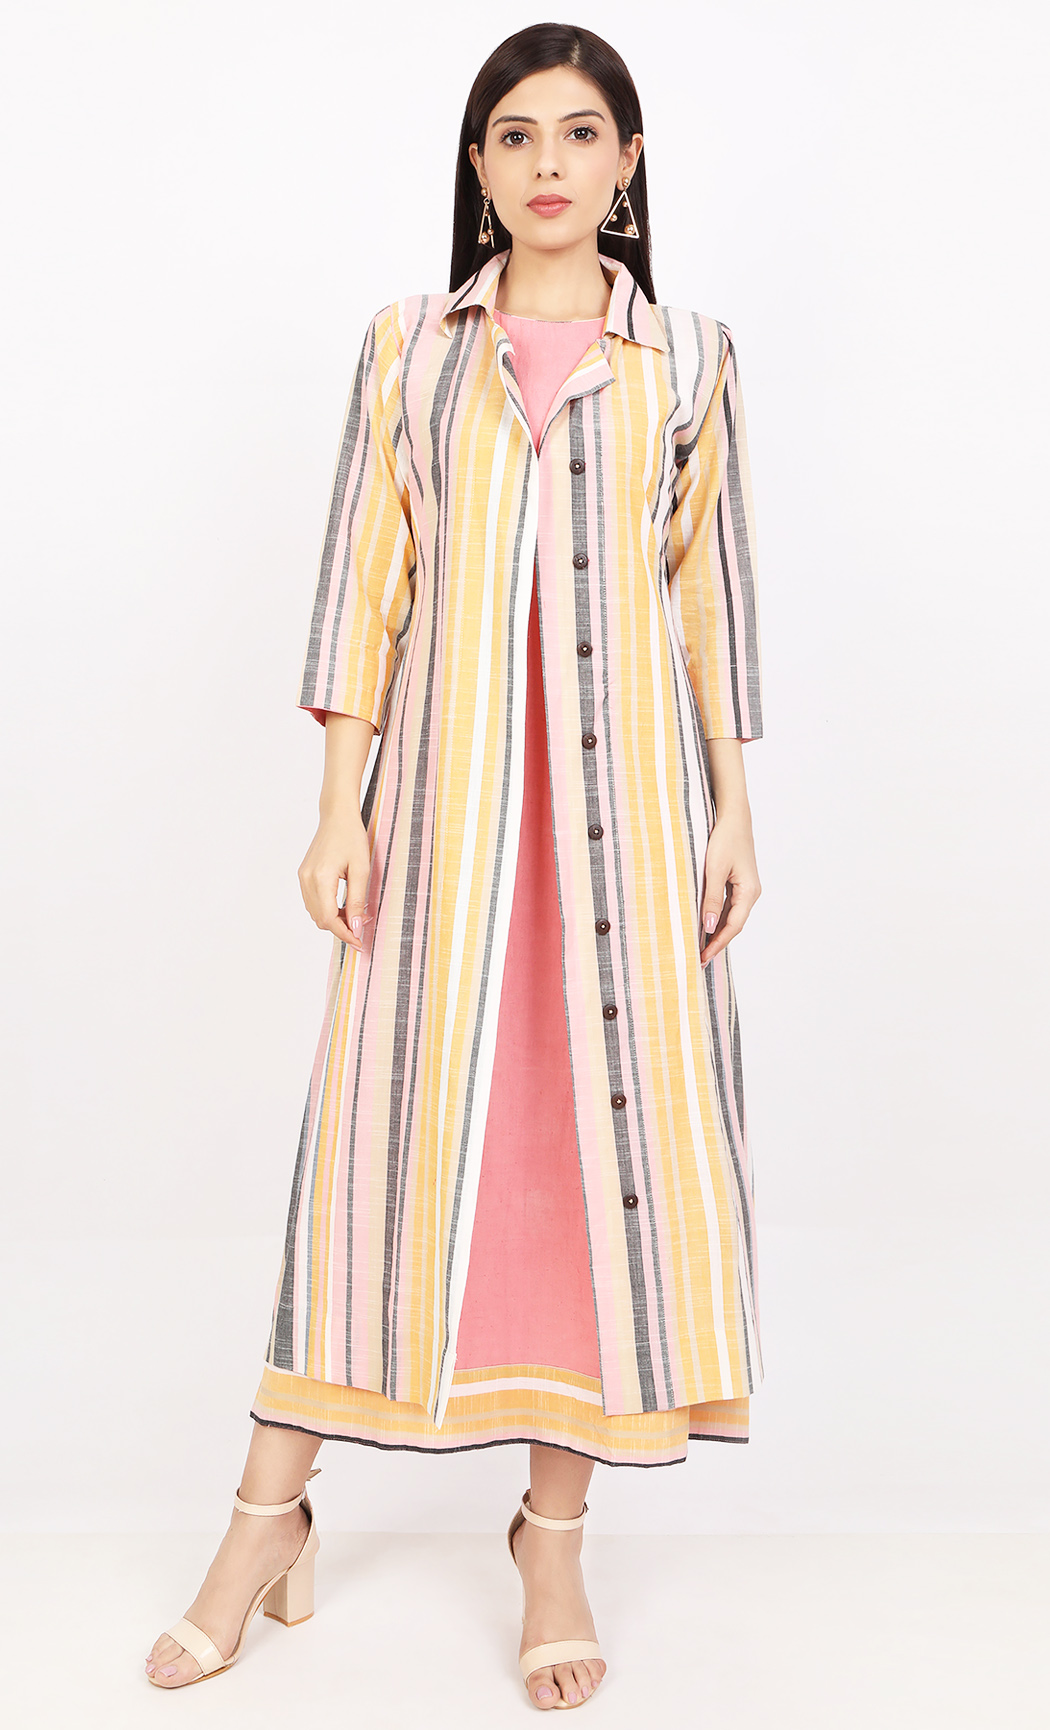 Multicolor Dress with Jacket. Buy Online